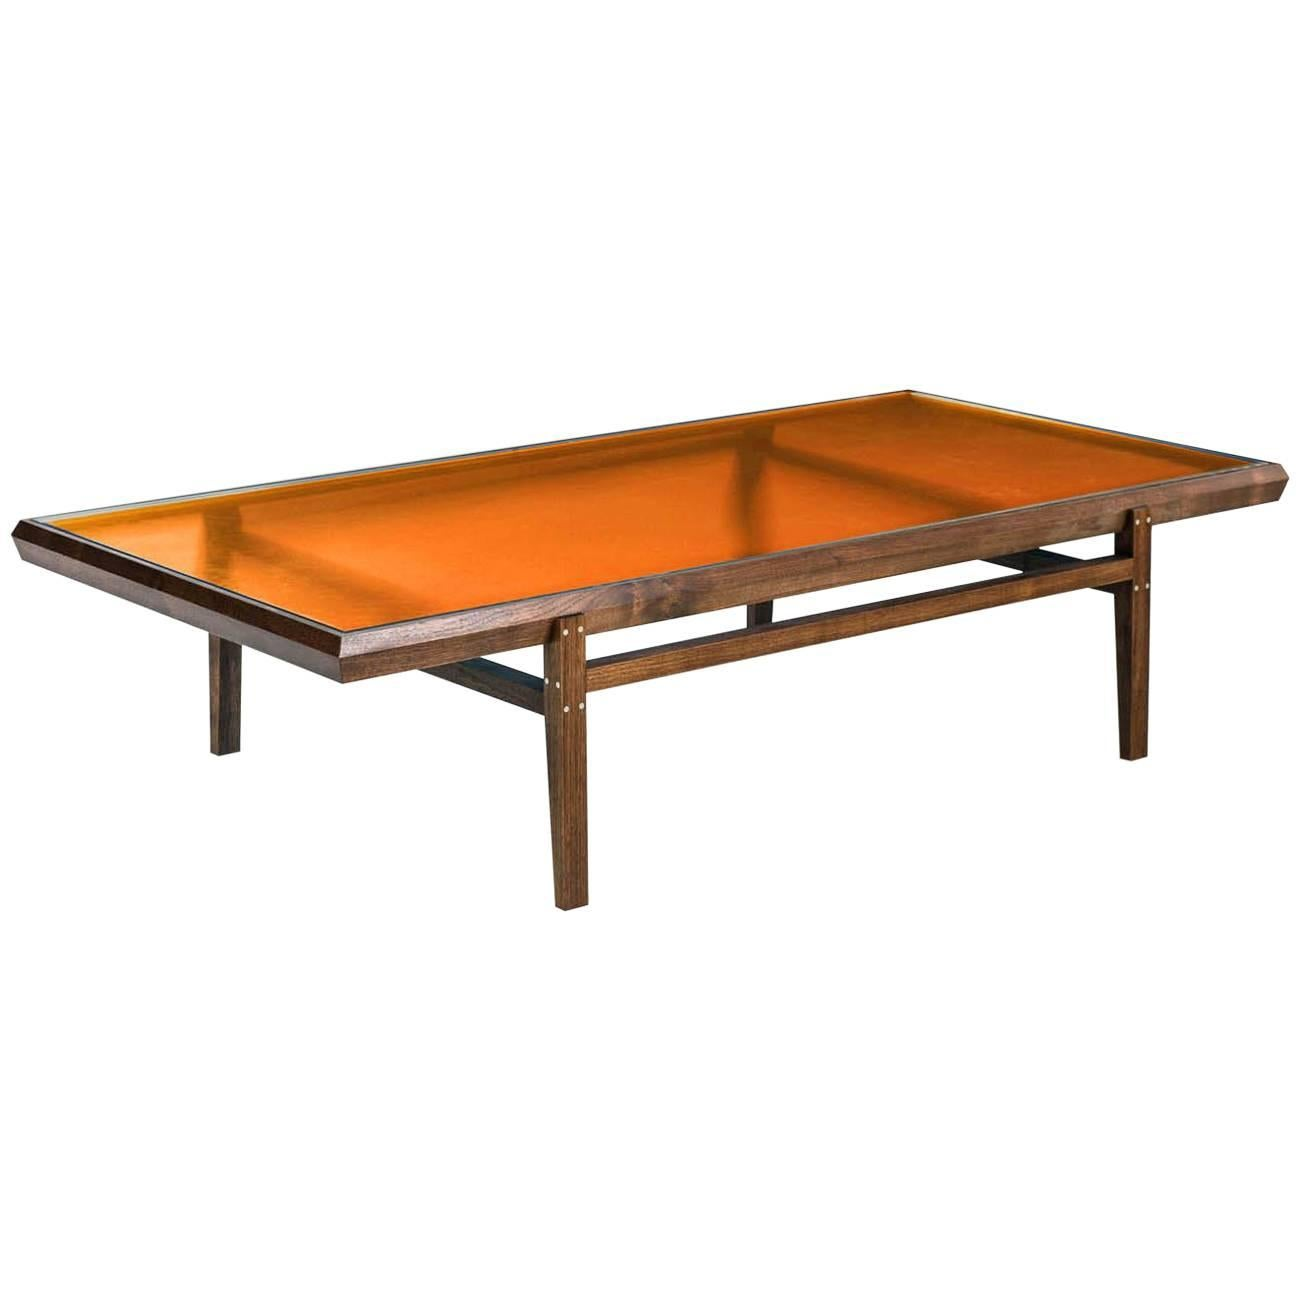 Delicieux Pintor Coffee Table, Walnut Frame With Stainless Steel Inlay, Orange Glass  Top